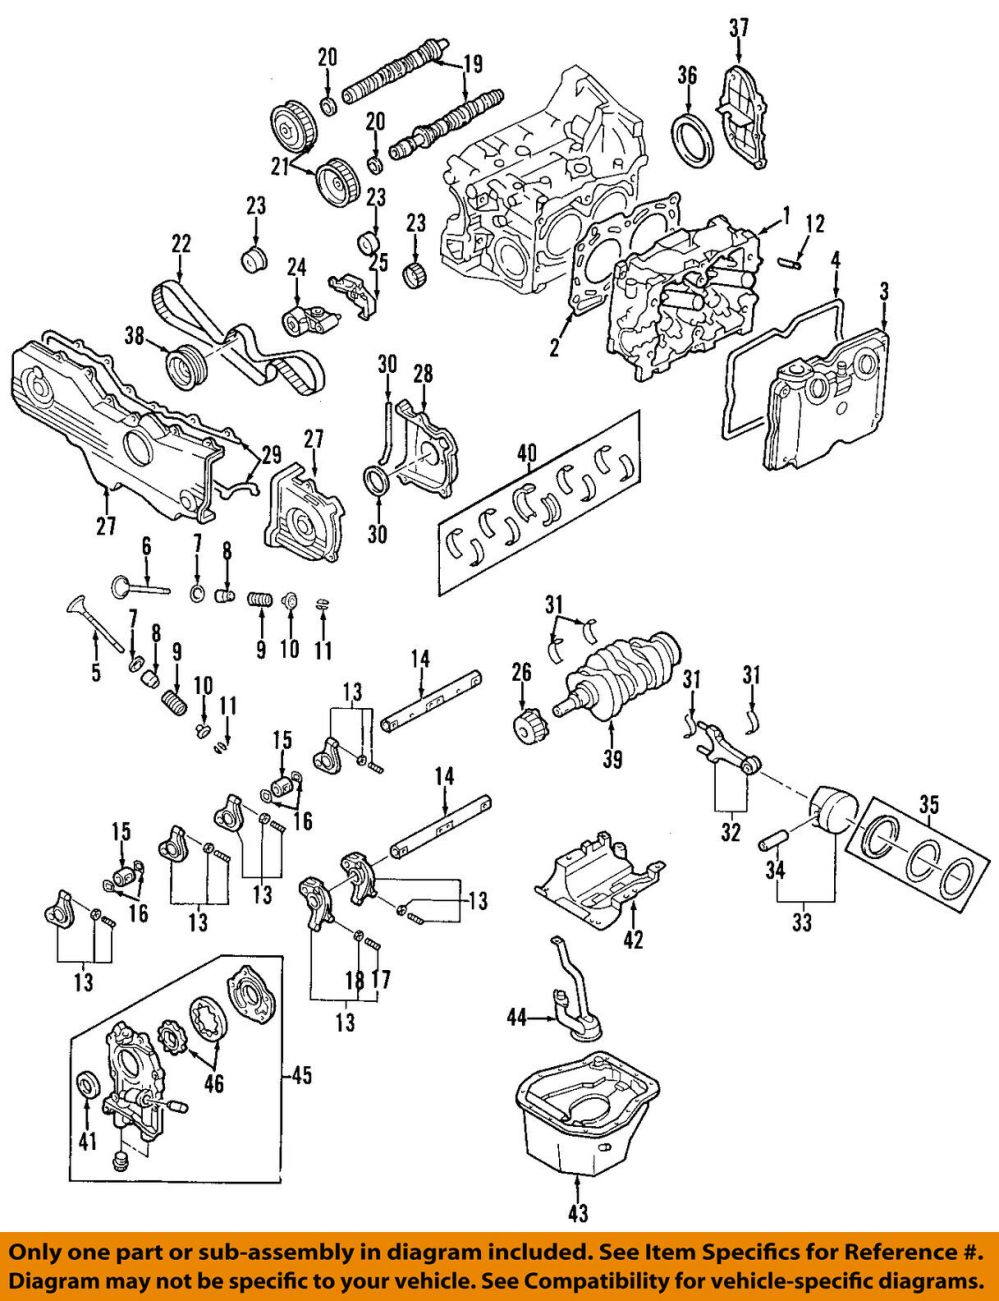 medium resolution of ej25 engine diagram wiring diagram query 2008 subaru boxer engine diagram